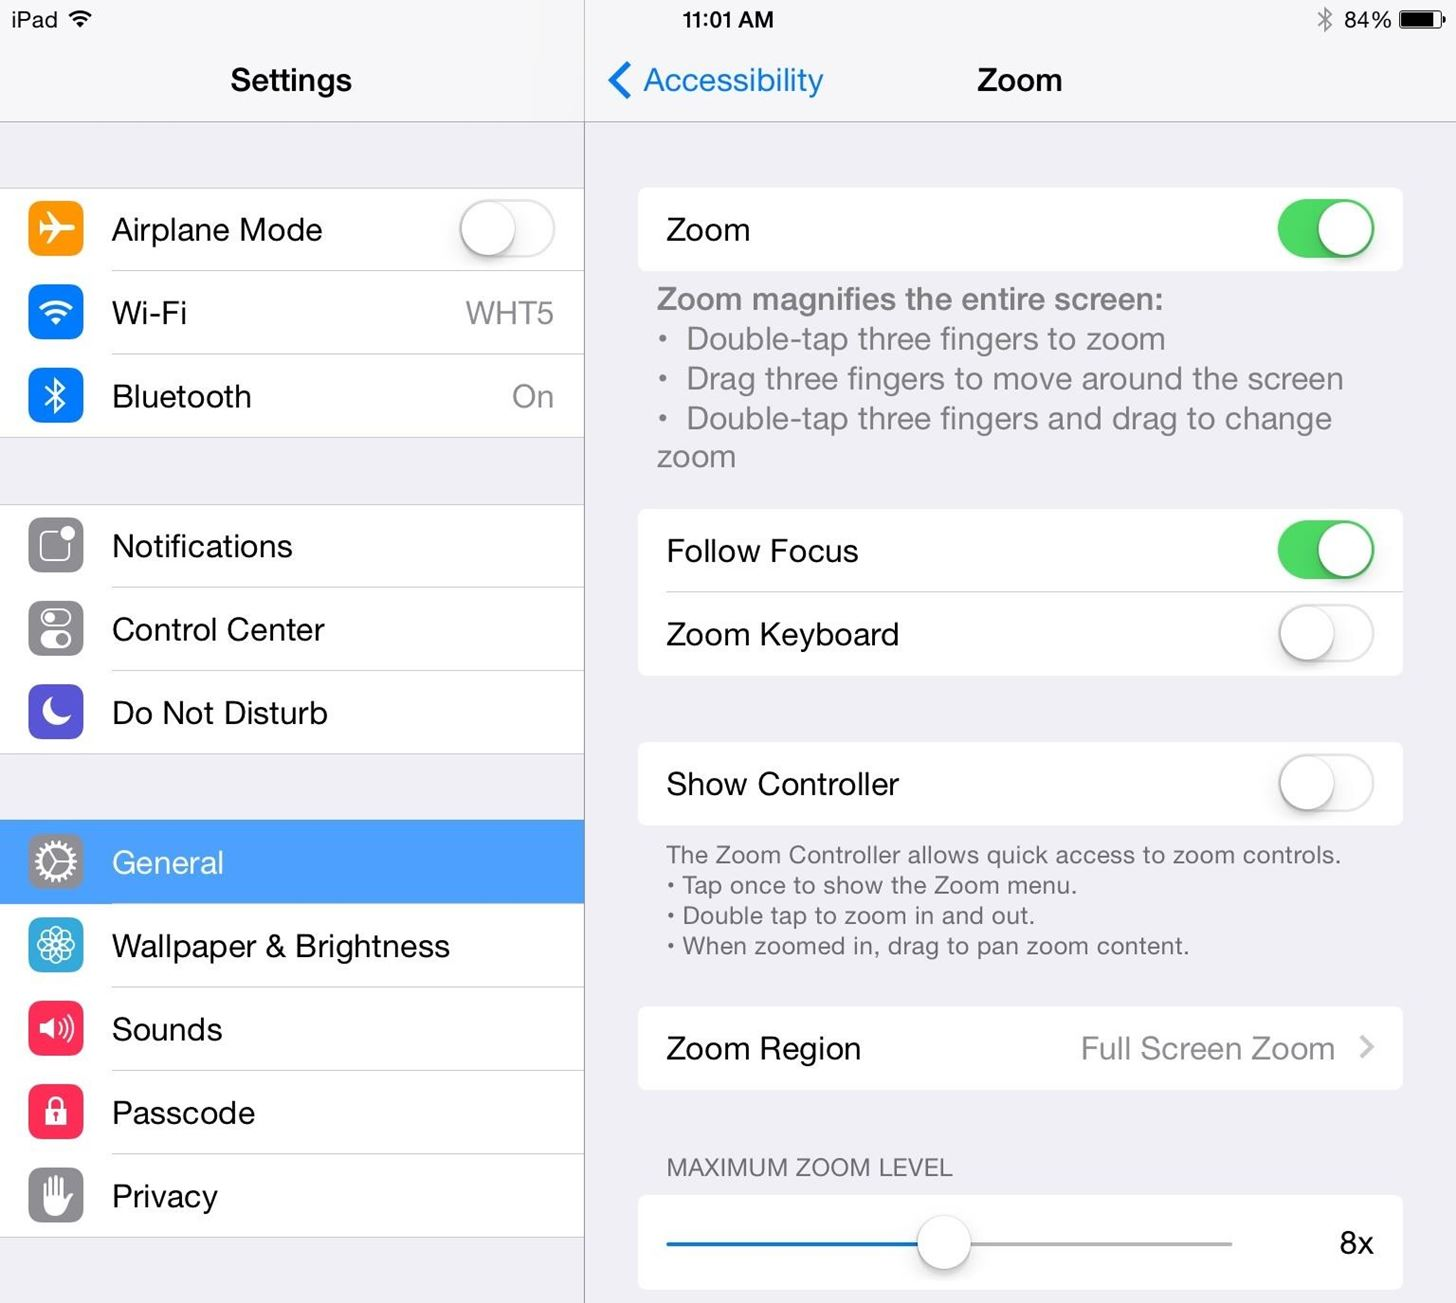 Hidden Zoom Features in iOS 8 Makes Reading Small iPhone Text Easier for Everyone